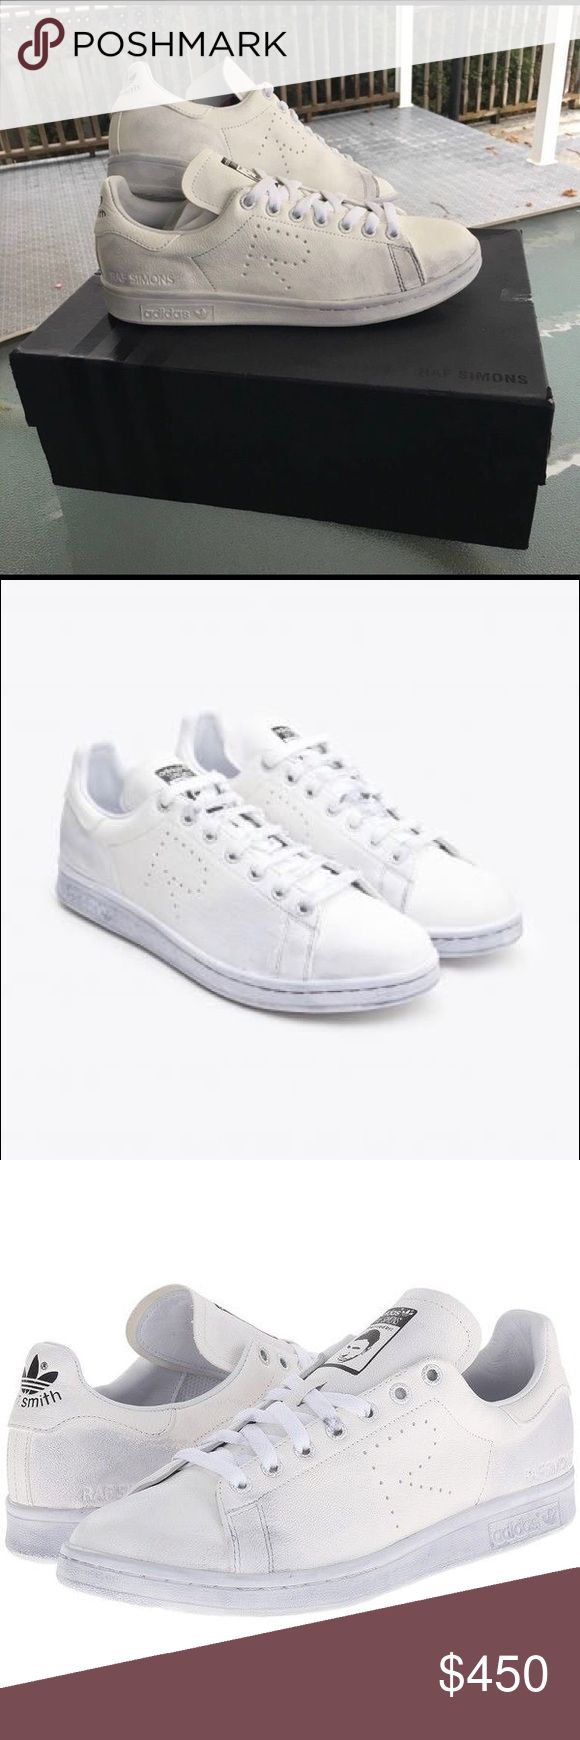 White Raf Simons Aged Leather Adidas Brand New in box never worn Raf Simons aged leather adidas....Retail $489...sold out in stores.... US size 9 mens... im open to selling them off of the site for less adidas Shoes Sneakers